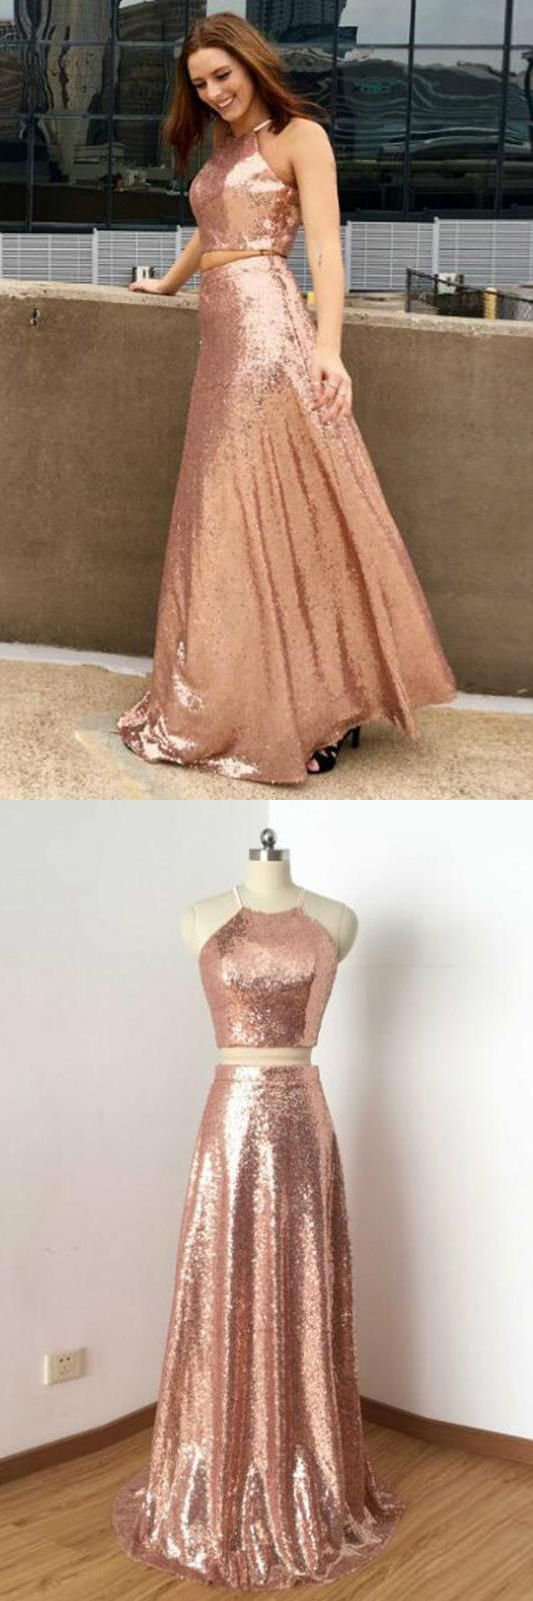 New Arrival Two Piece Sequined Cheap Long A Line Prom Dress,Long Prom Dress,Sexy